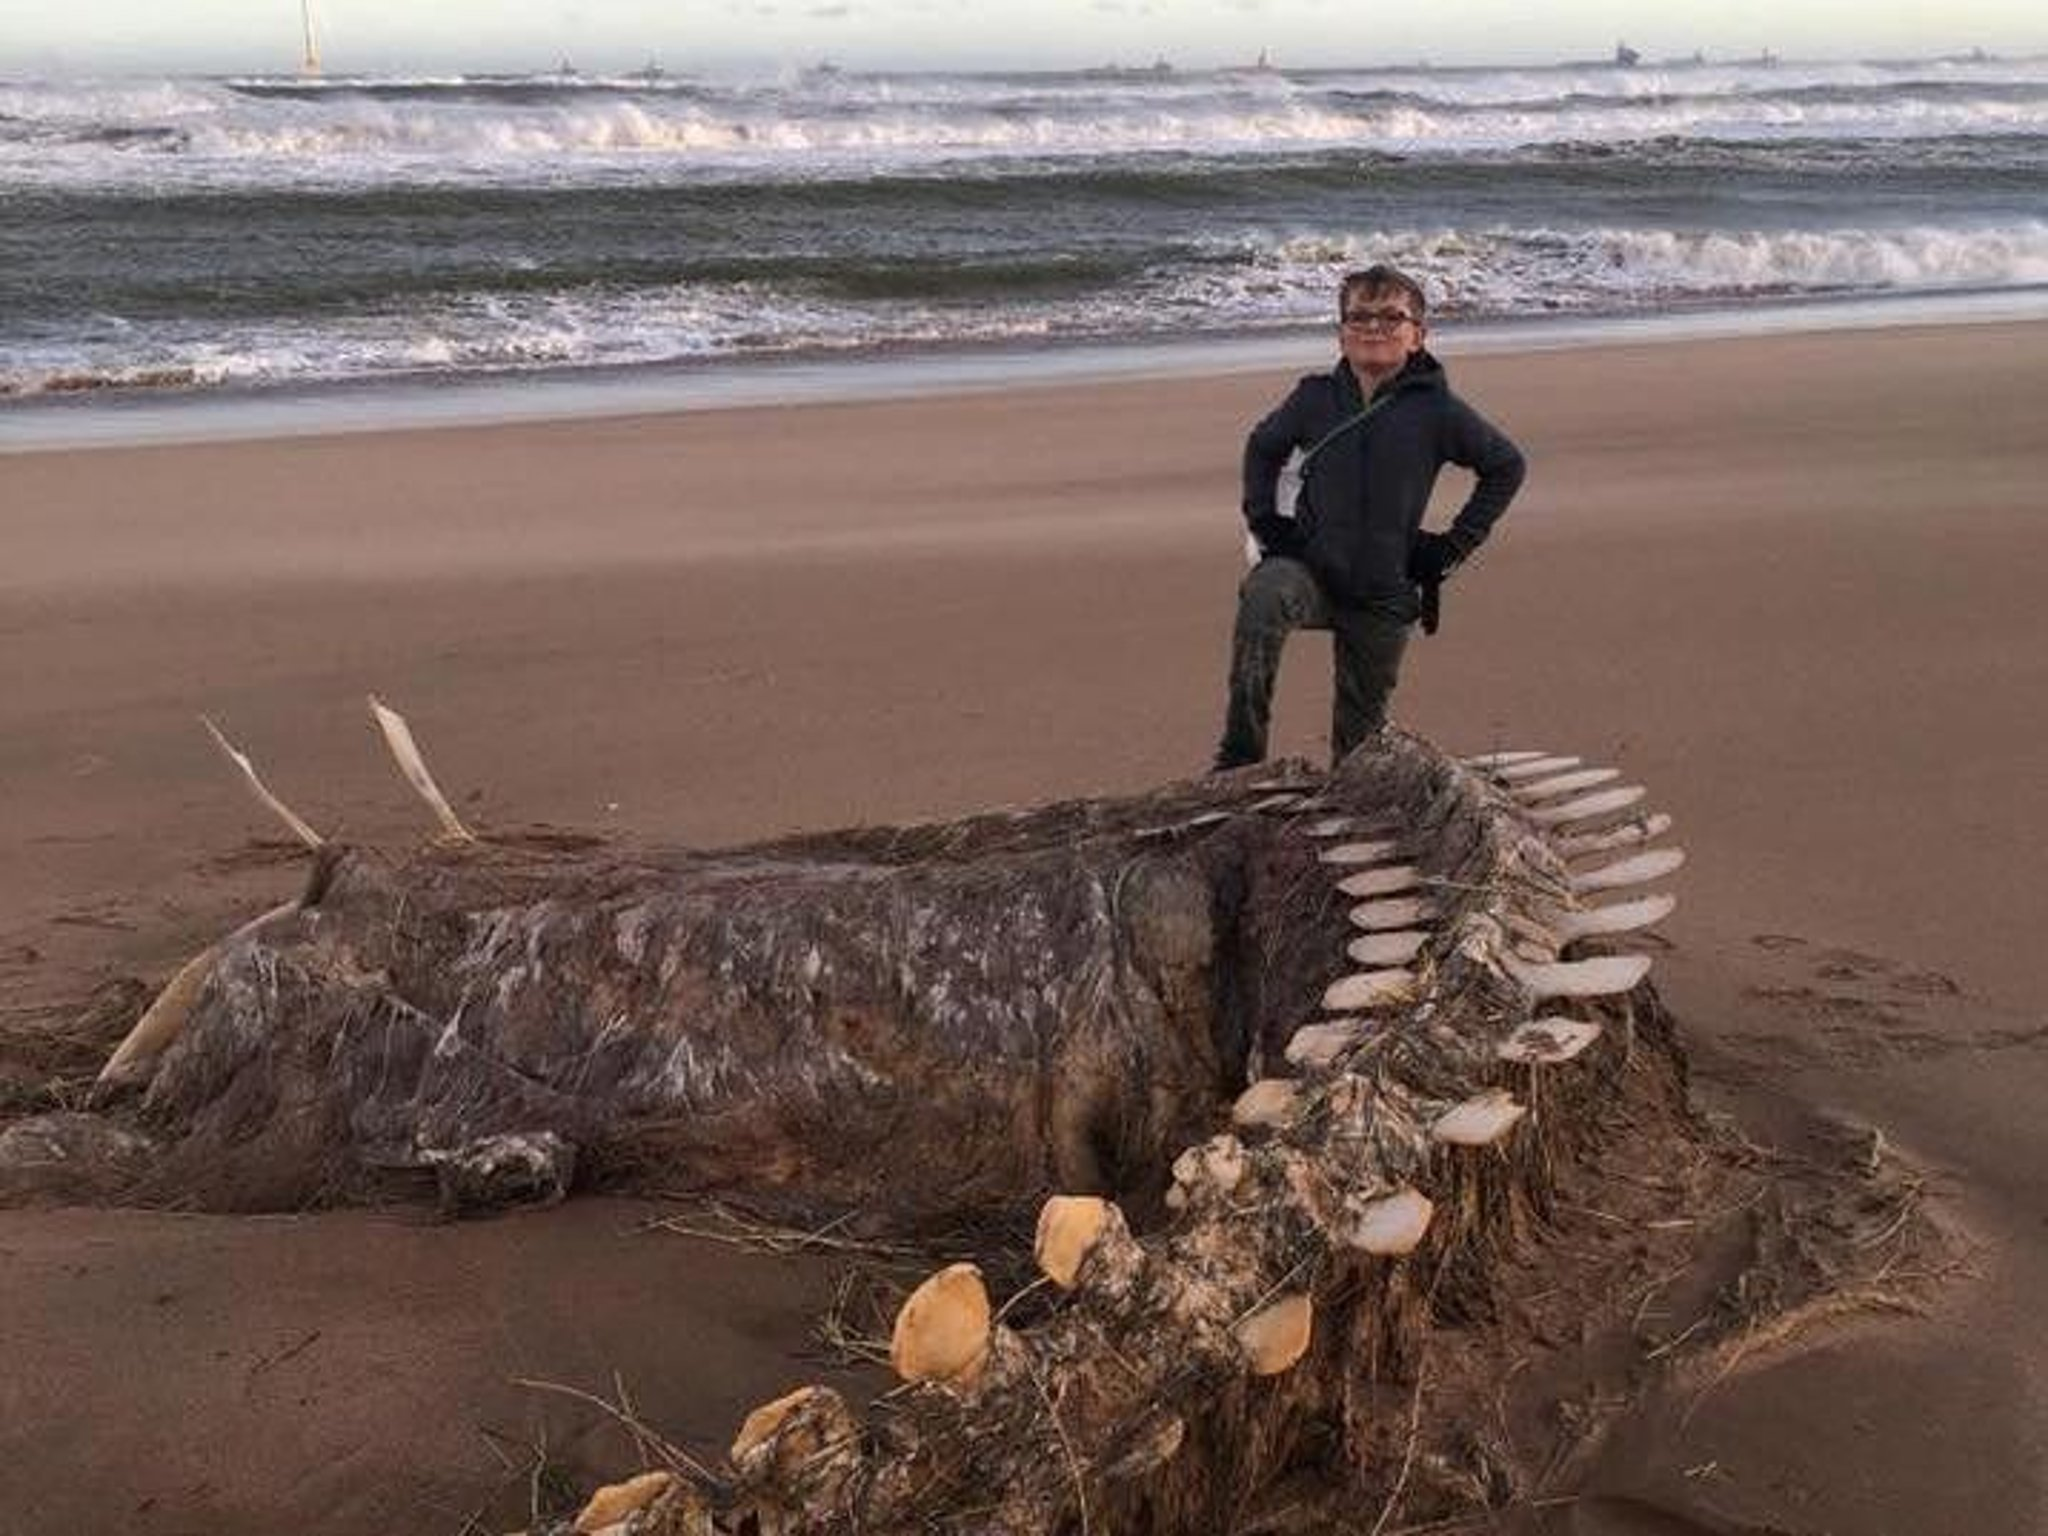 It's Nessie' - Mystery skeleton washed up on Scots beach leads to speculation it's Loch Ness Monster | The Scotsman